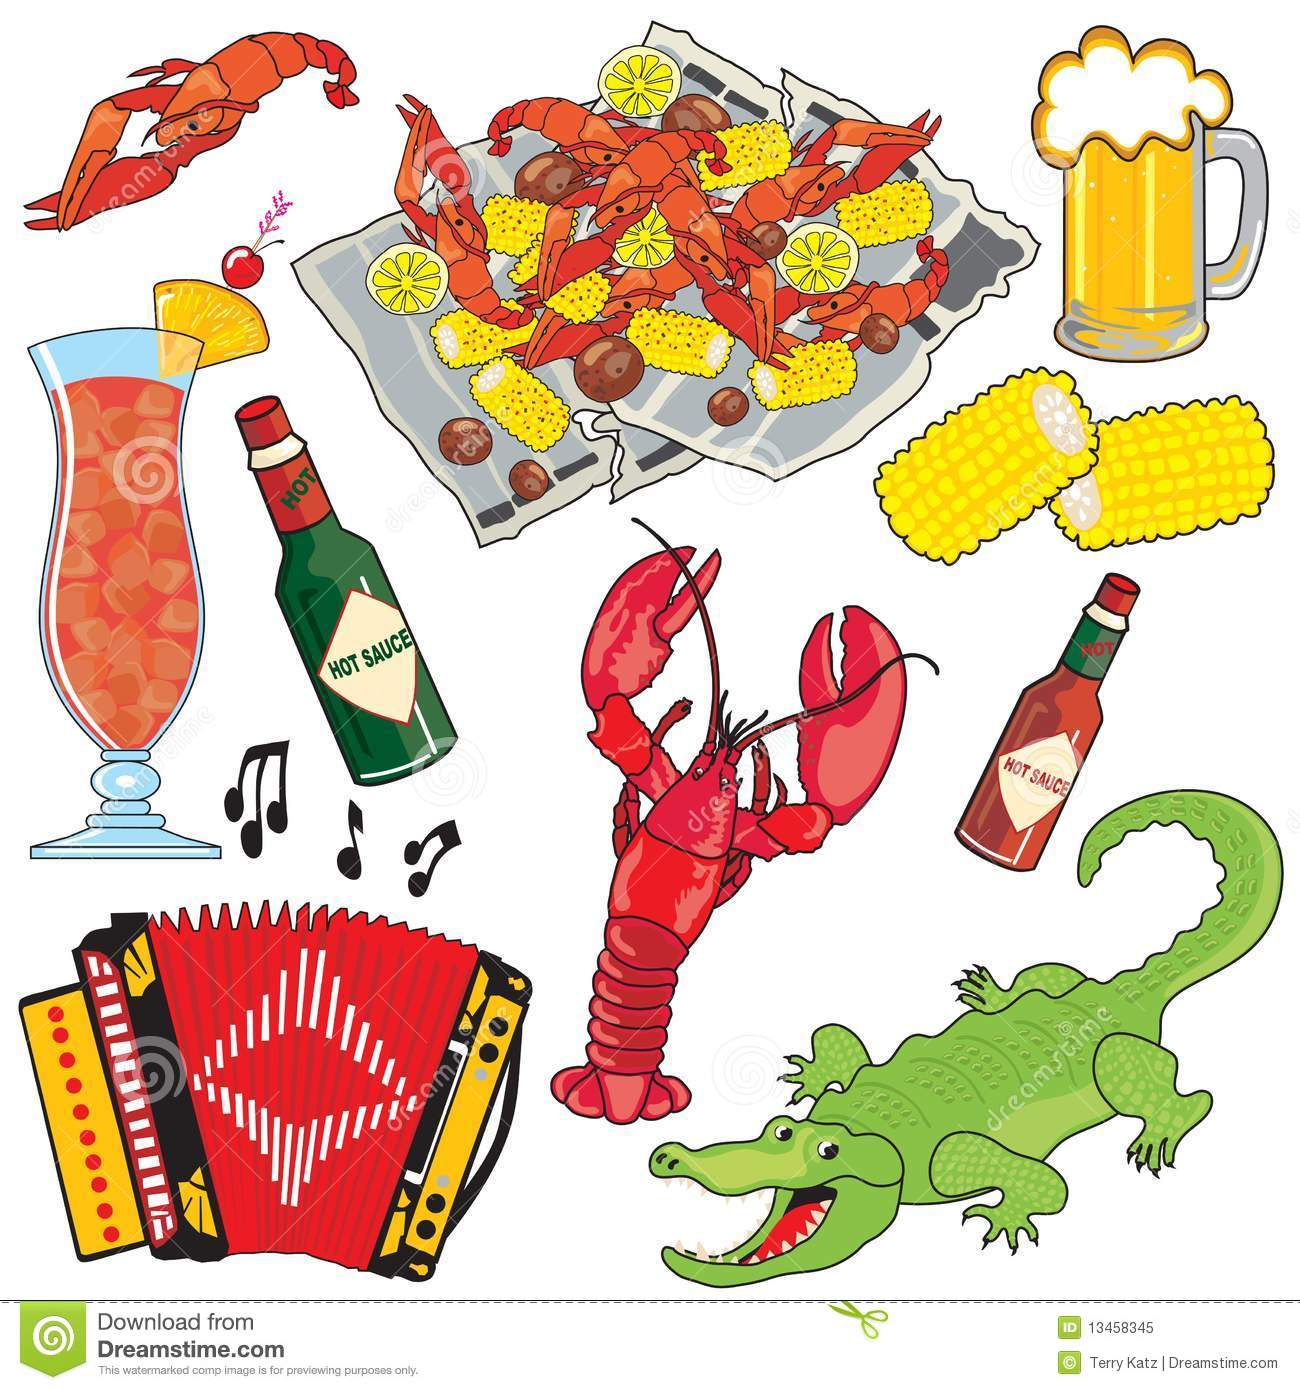 Cajun Food, Music and drinks clipart icons and ele